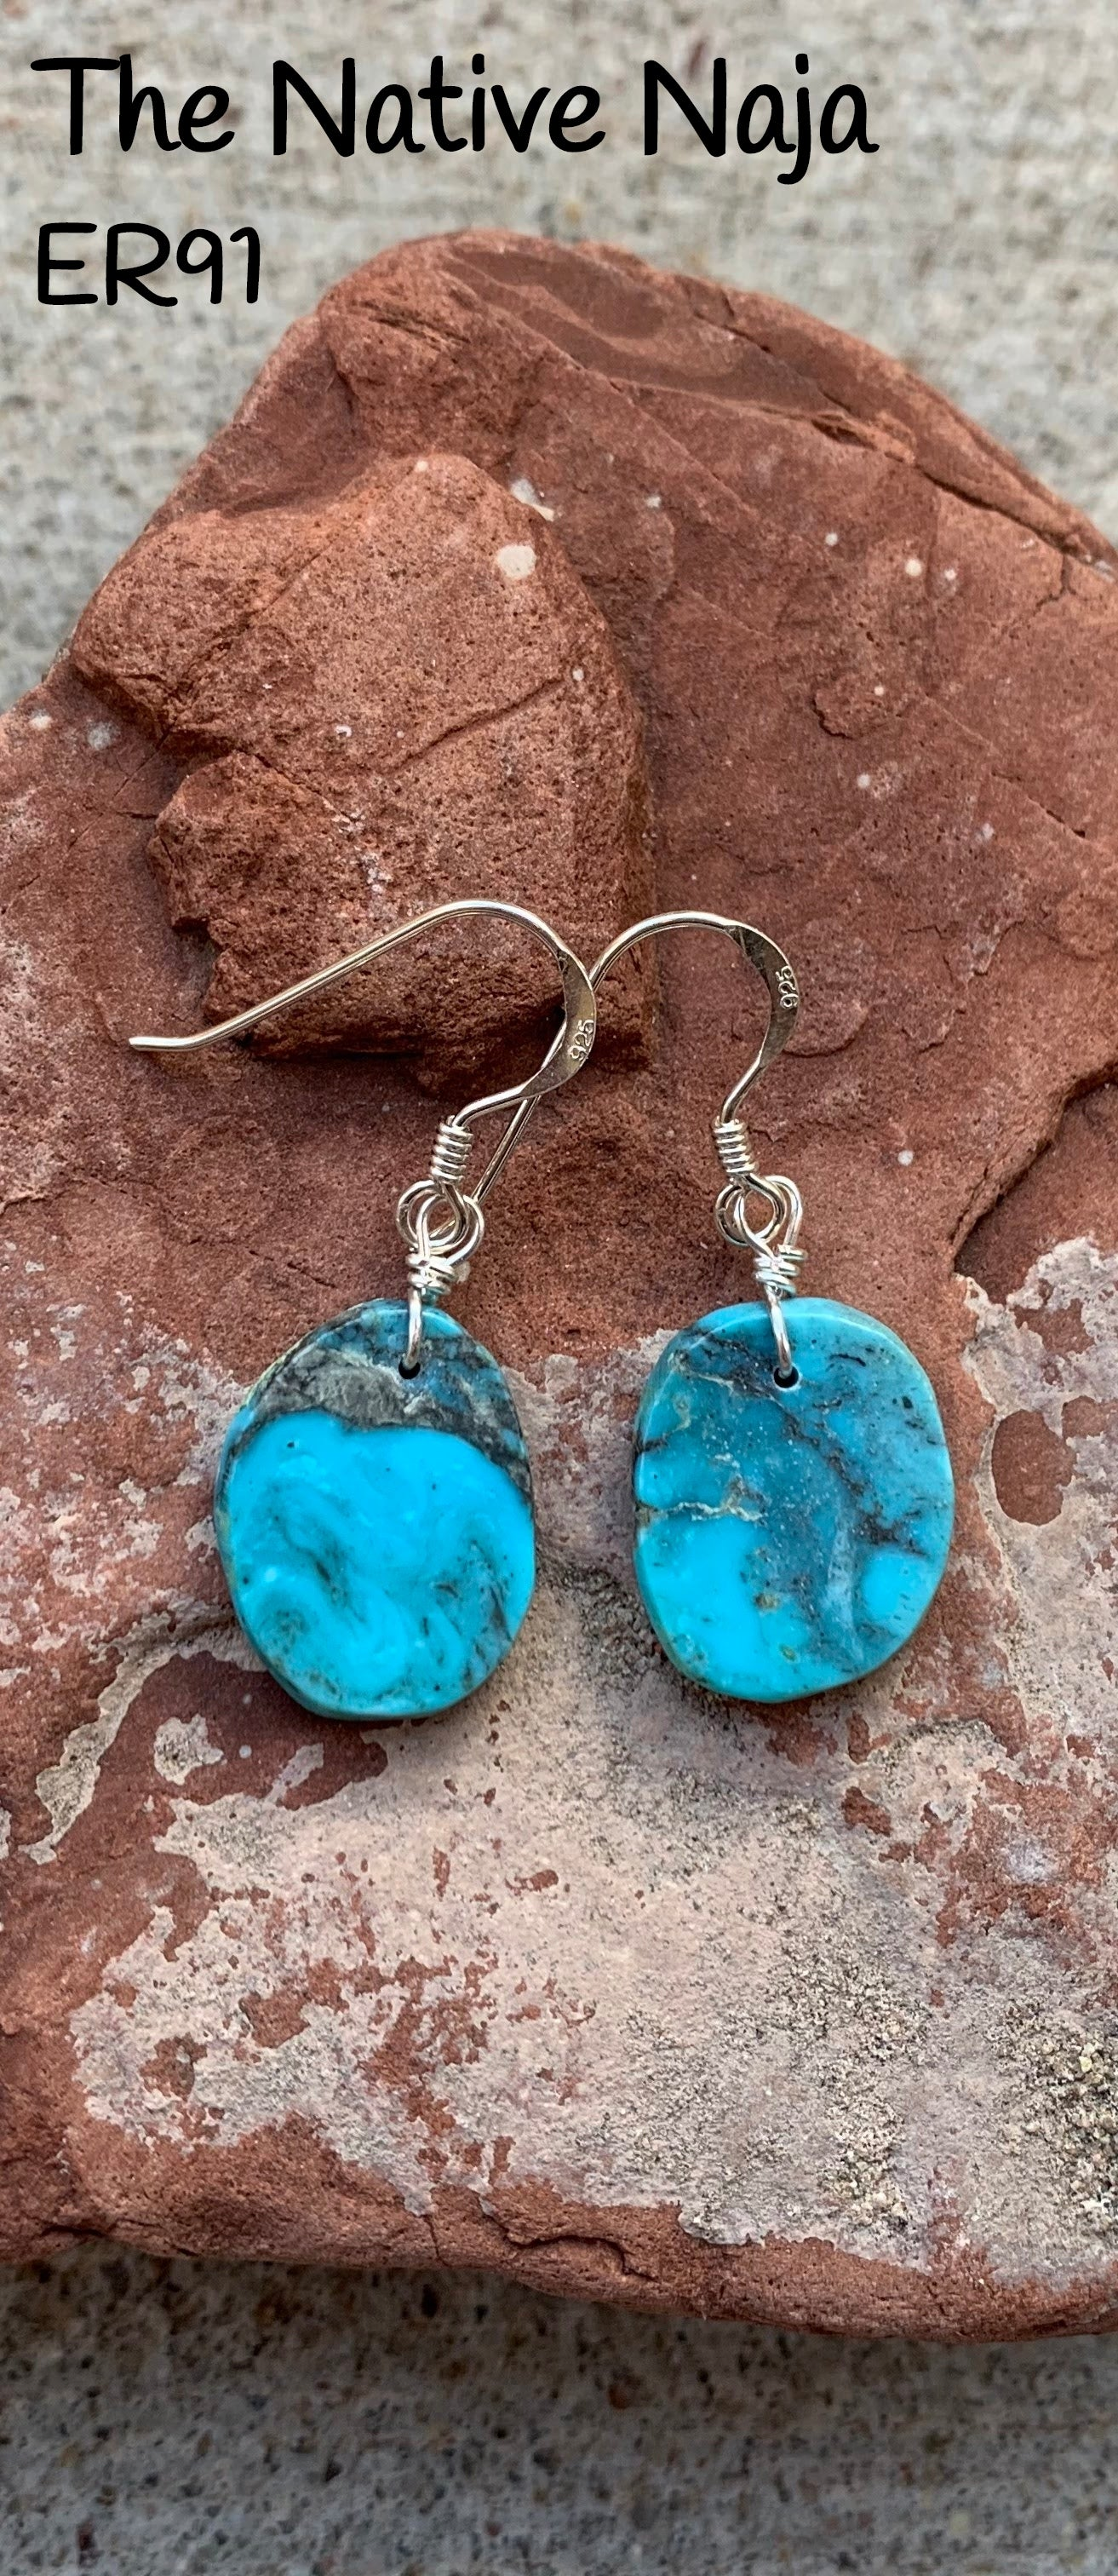 Dainty Navajo Sterling Silver & Genuine Kingman Turquoise French Hook Slab Earrings ER91